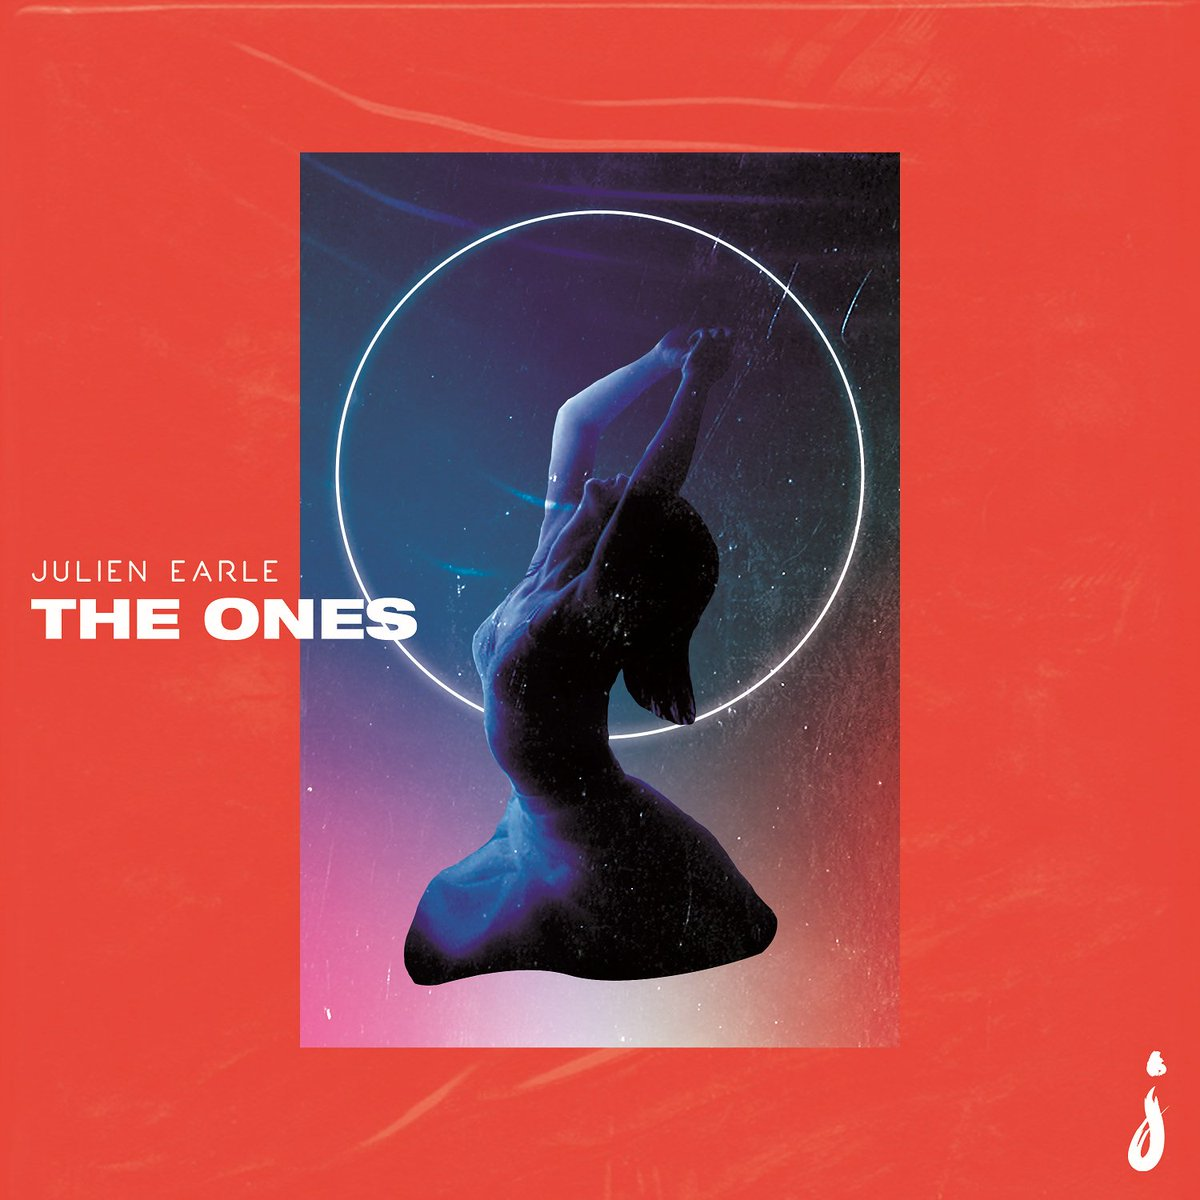 Next to come at TENACITY/@elxrrcrds: @julienearle The Ones 🔥🎶 #theones